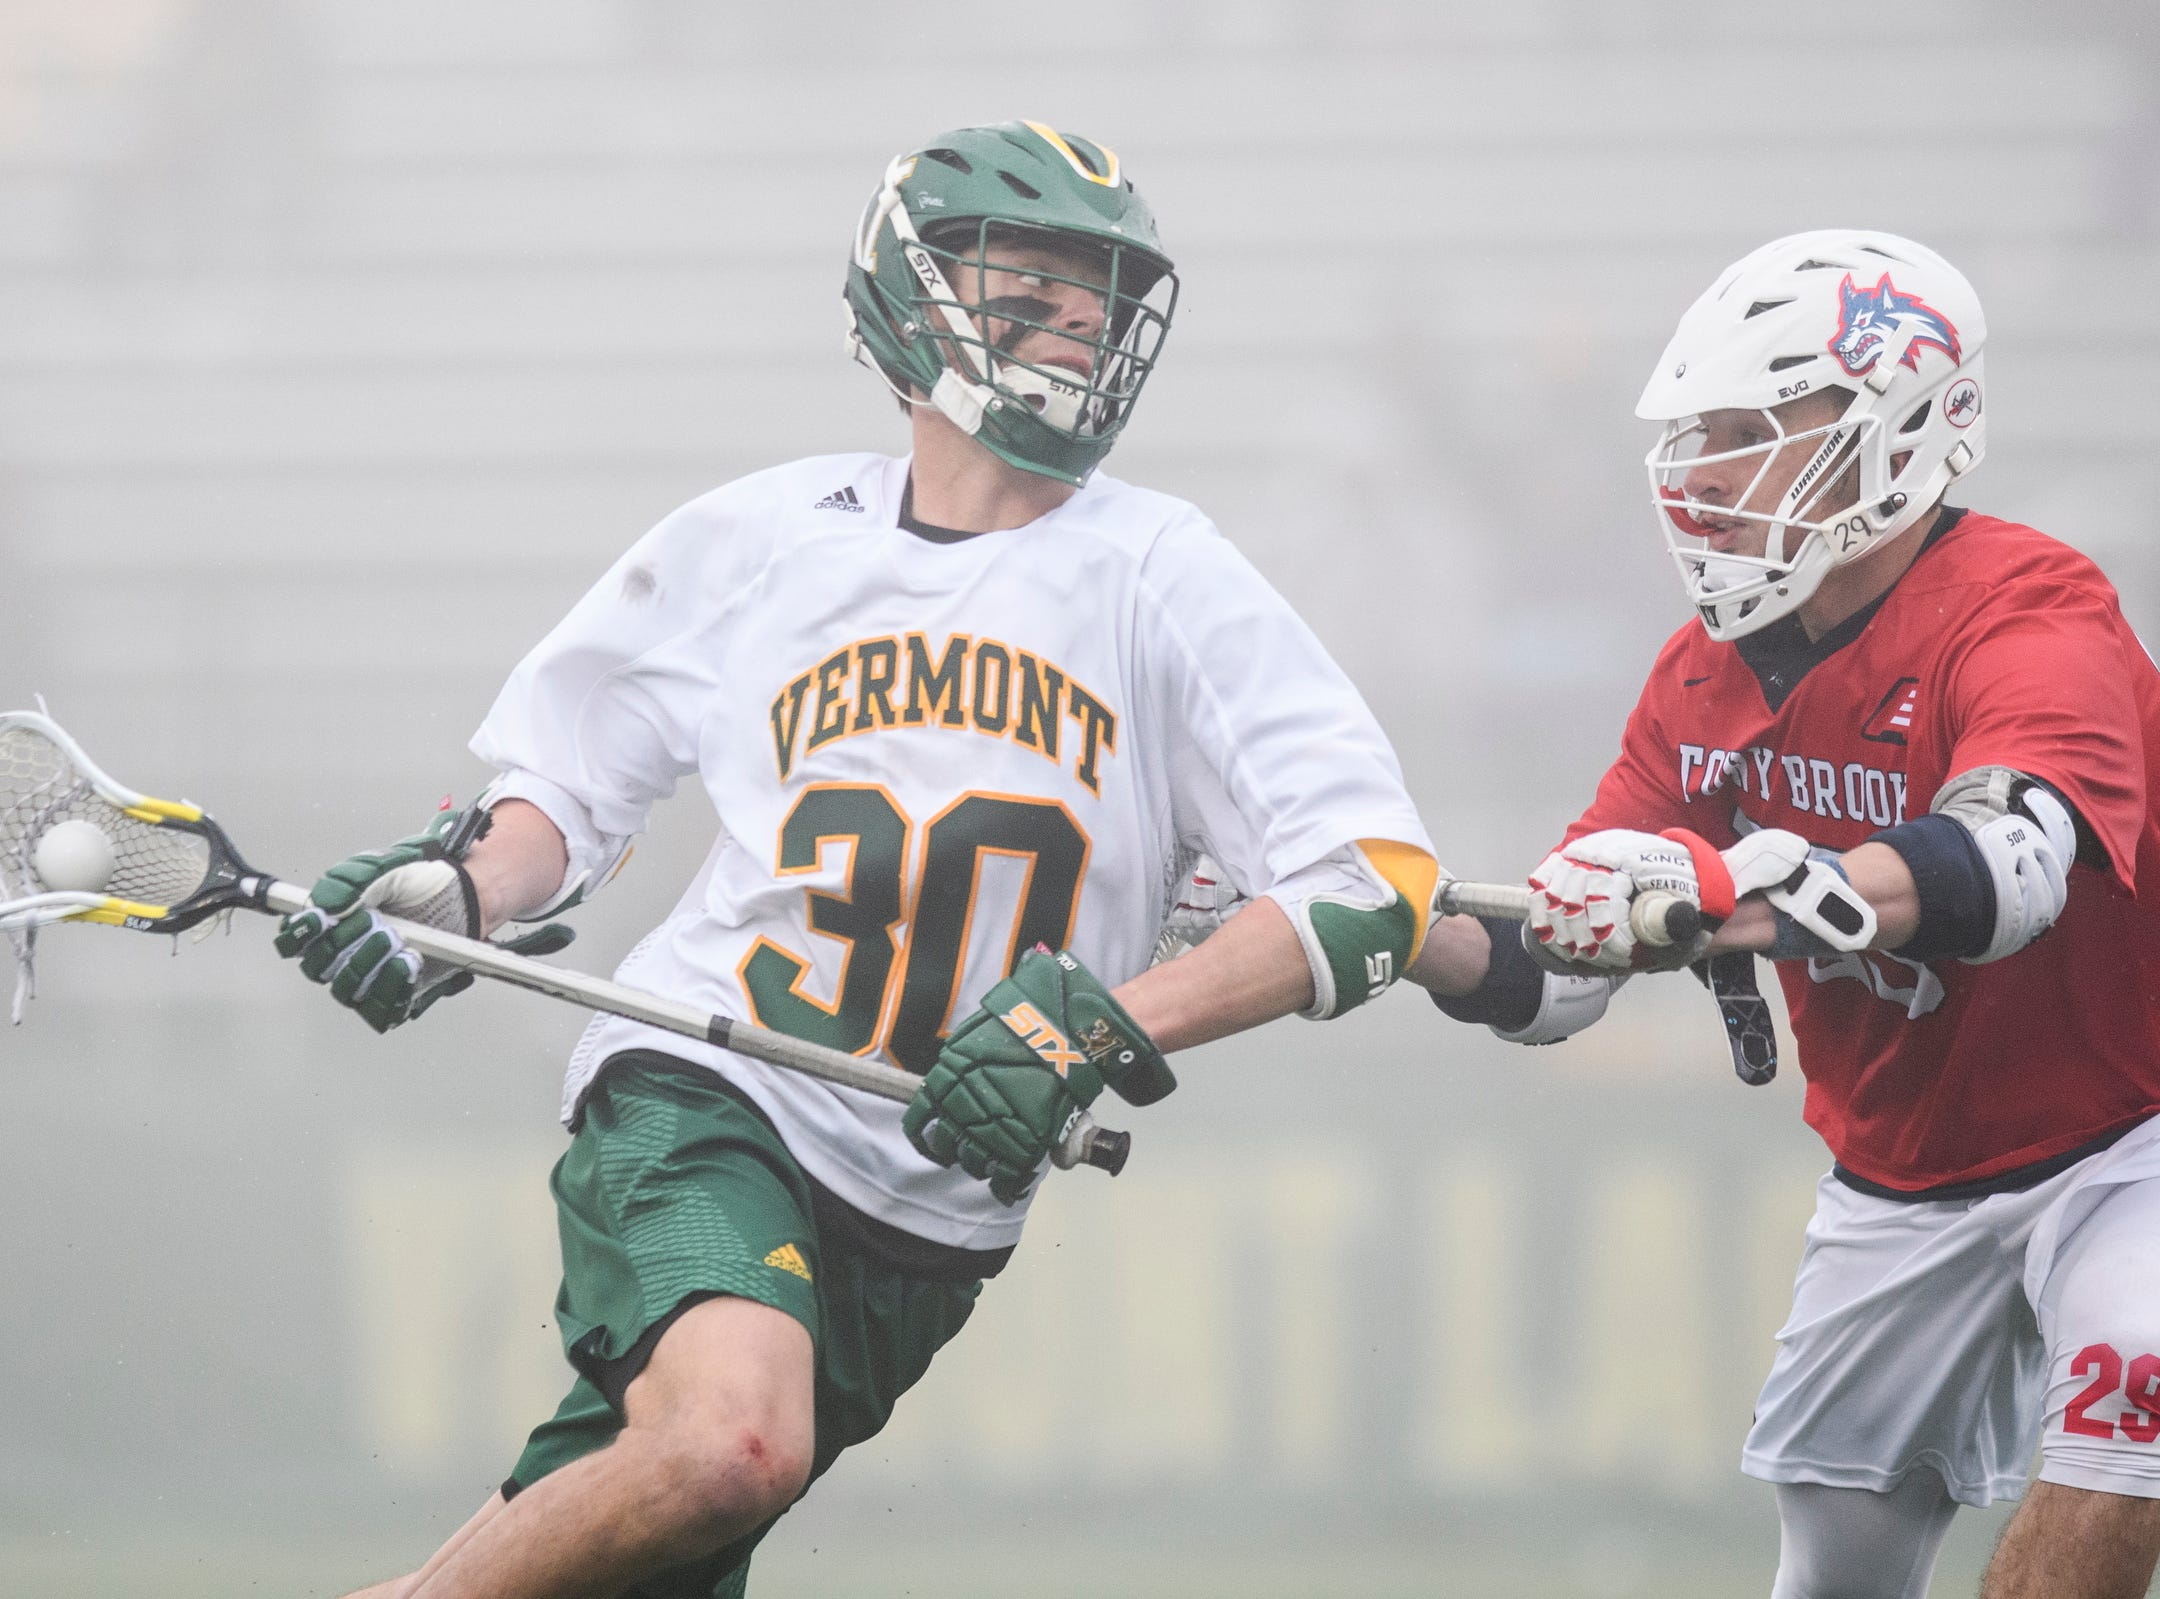 Vermont's Sal Iaria (30) runs past Stony Brook's Jimmy Morrell (29) with the ball during the men's lacrosse game between the Stony Brook Sea Wolves and the Vermont Catamounts at Virtue Field on Saturday afternoon April 20, 2019 in Burlington, Vermont.